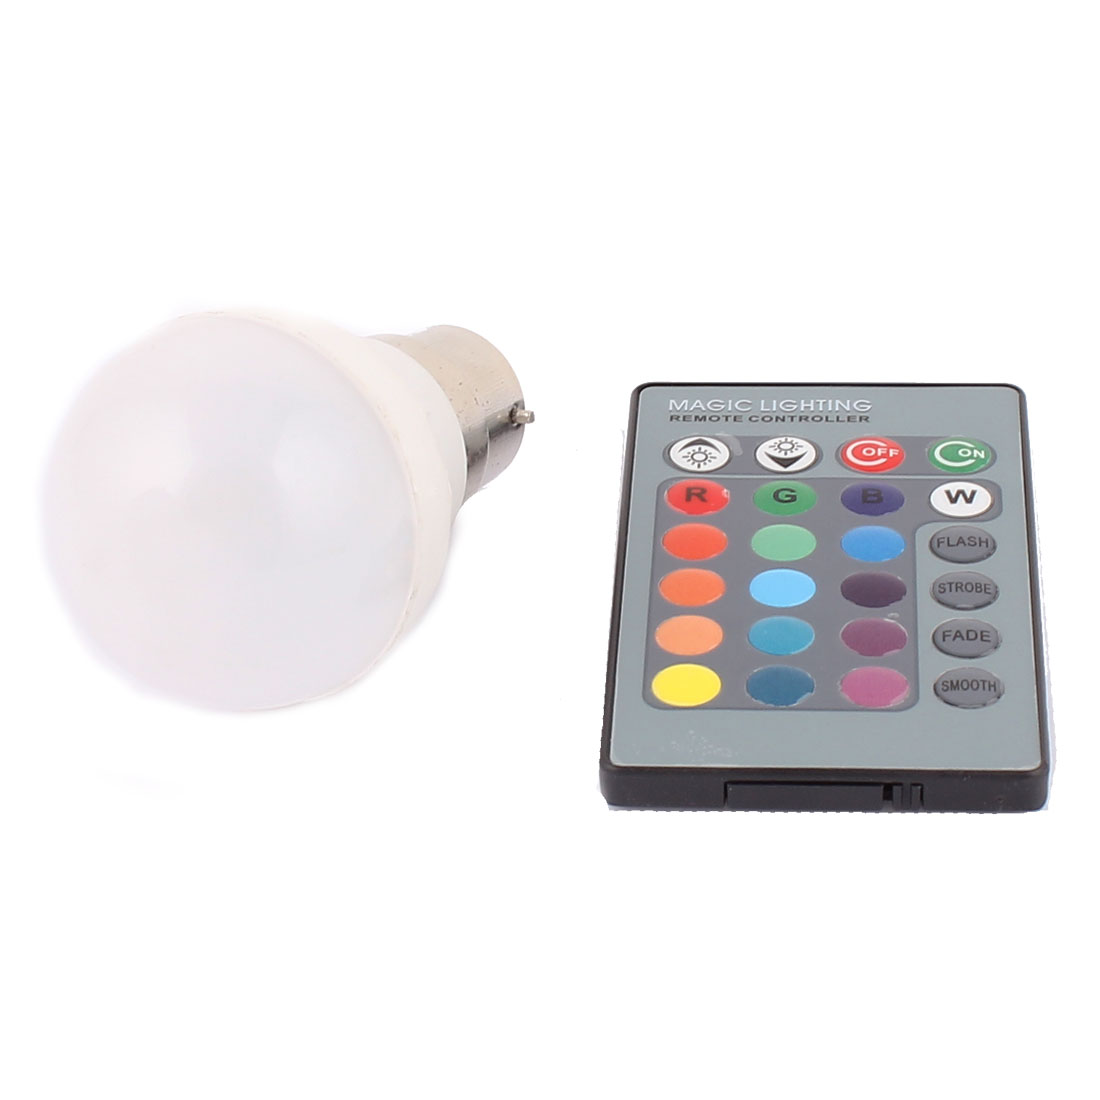 B22 Adapter Decor Home Light RGB LED Lamp Bulb 3W AC 85-265V w Remote Controller